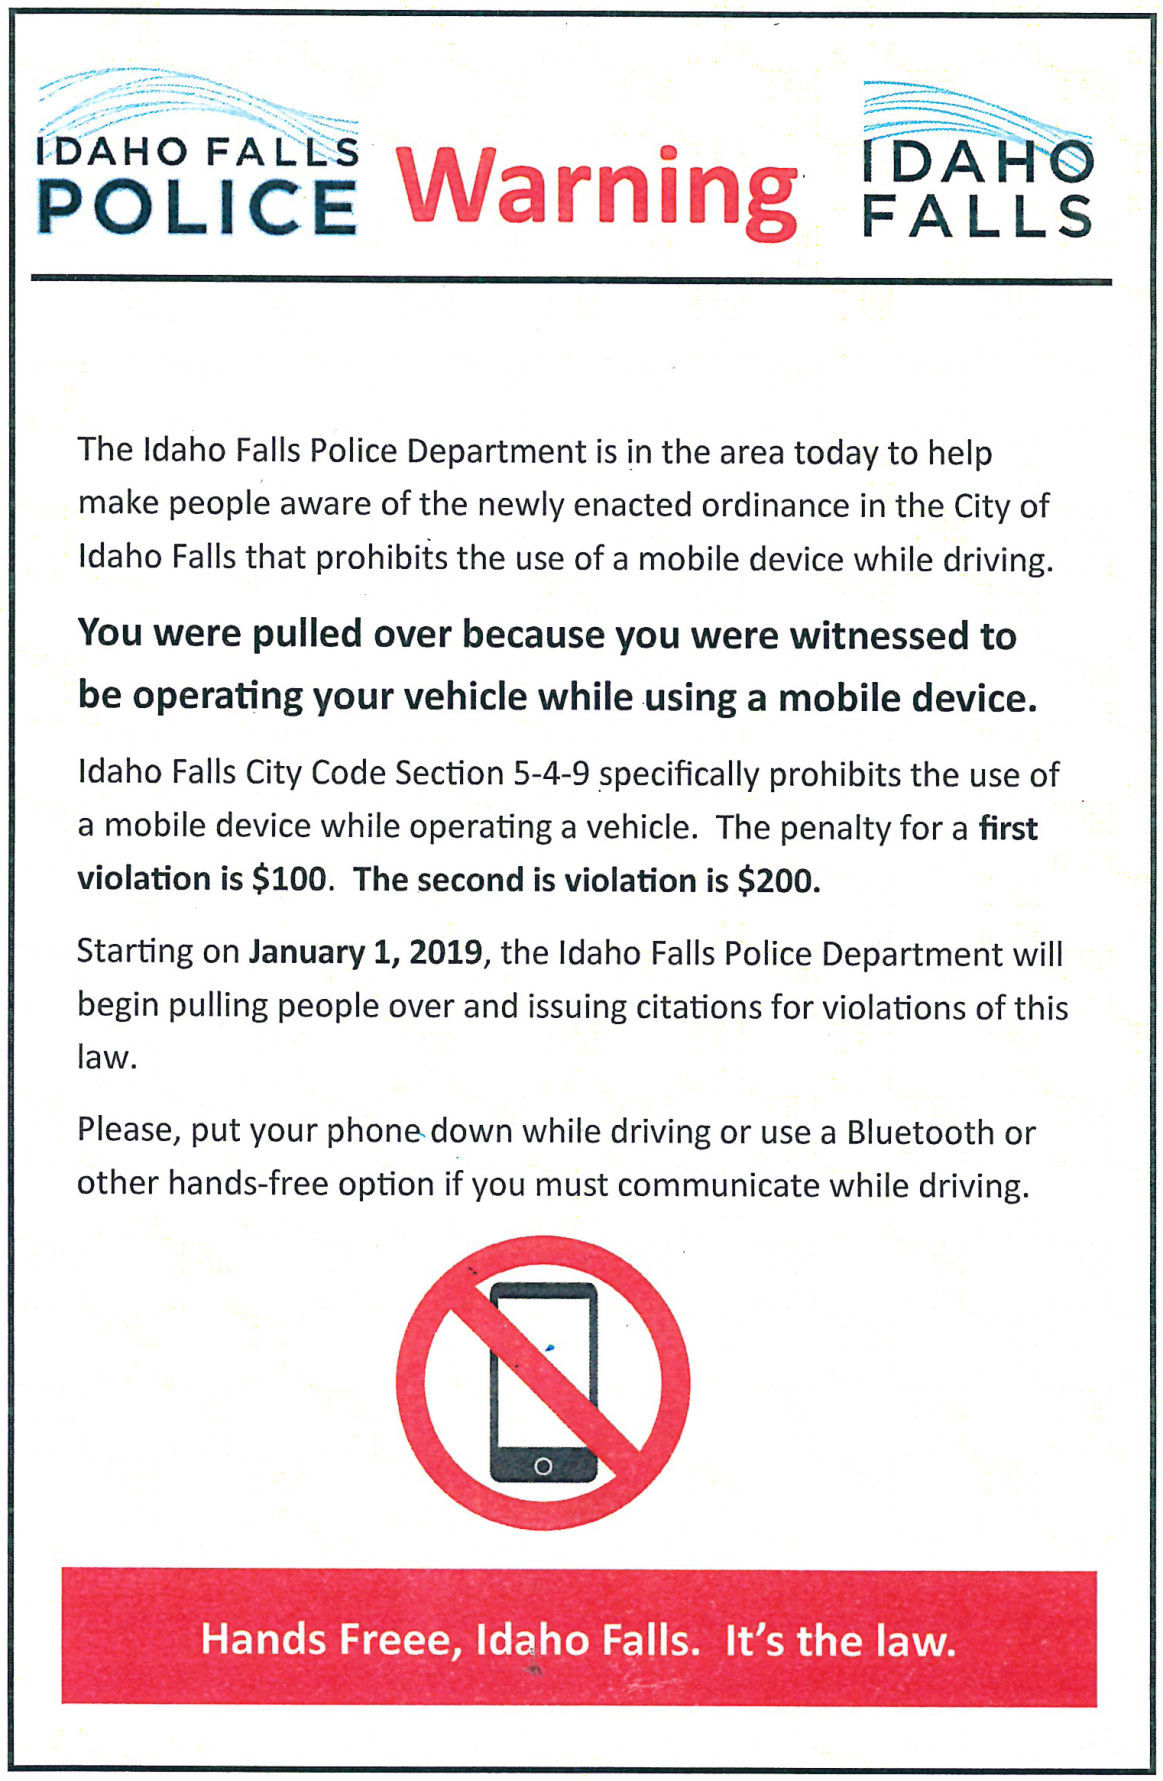 Warning - cellphones while driving